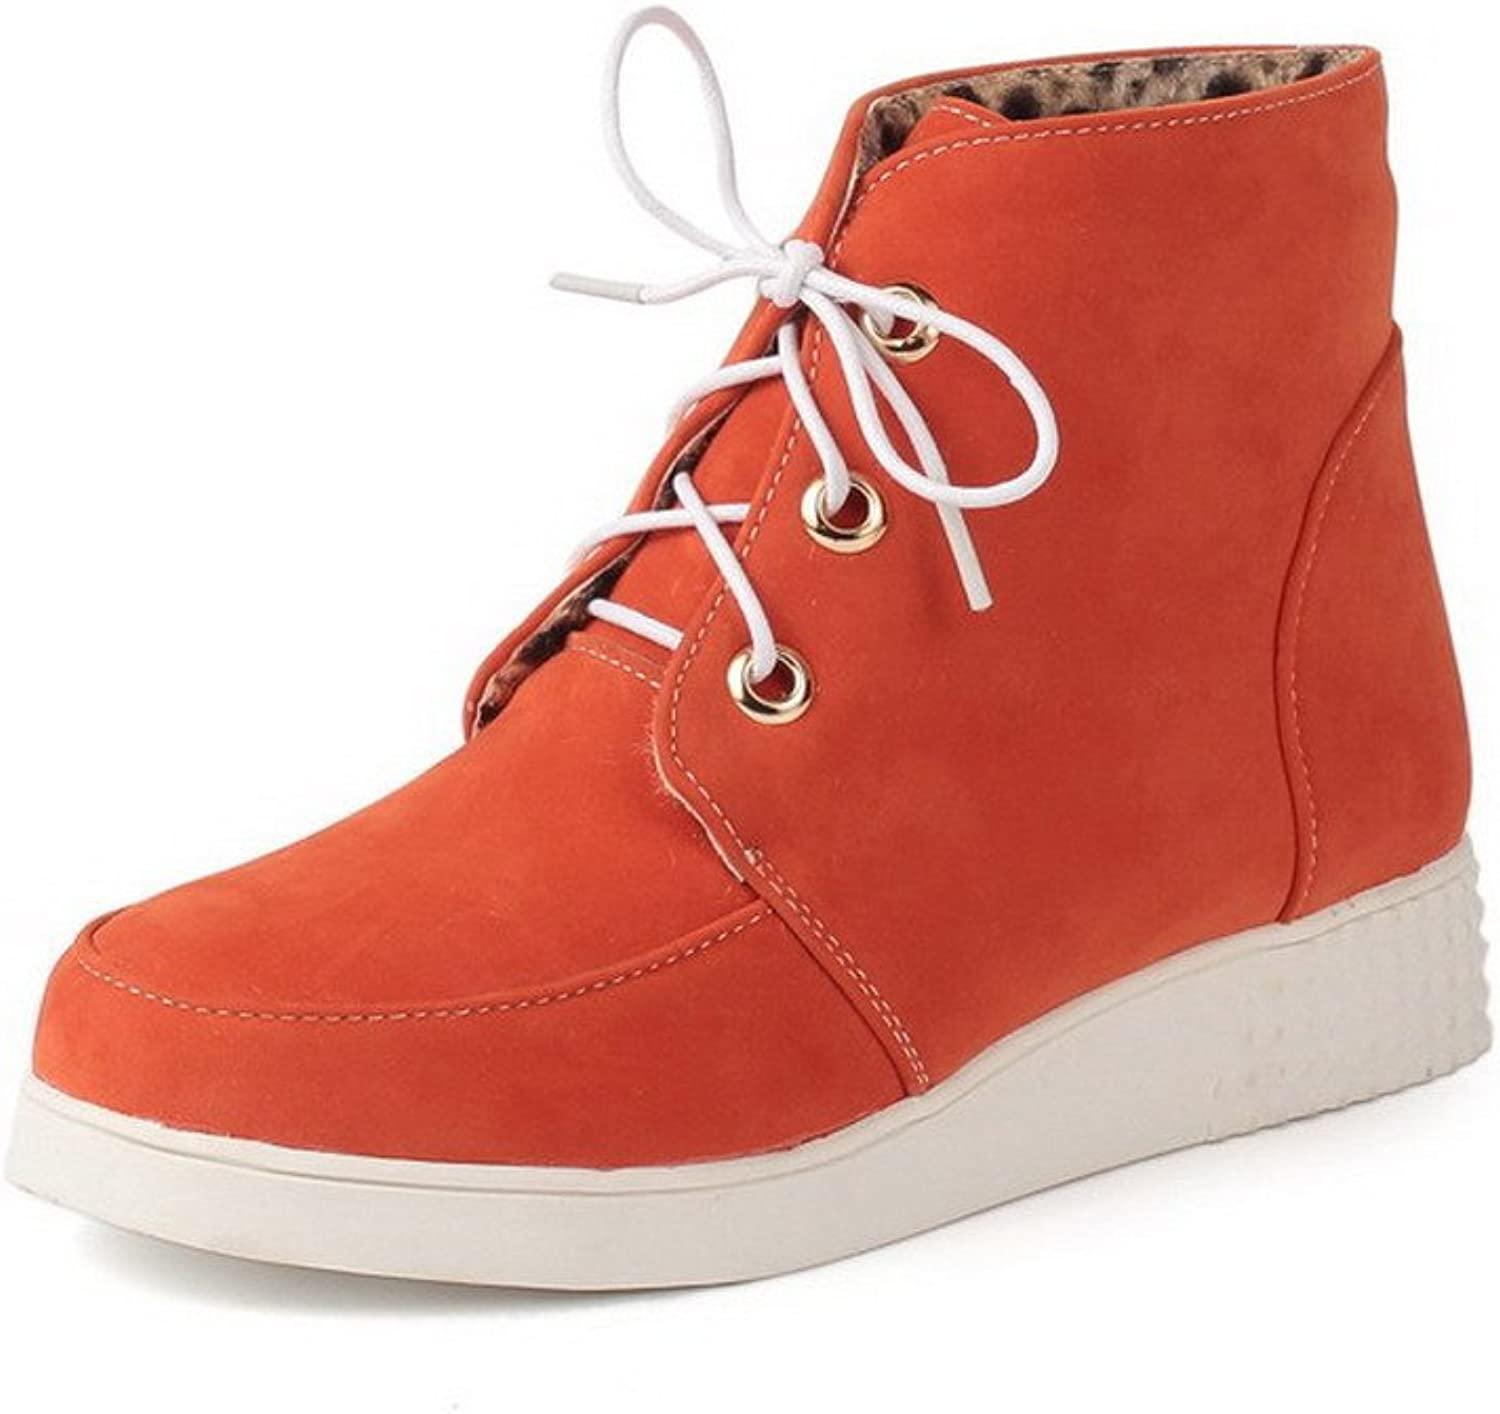 WeenFashion Women's Solid Imitated Suede Low-Heels Lace-Up Round Closed Toe Boots